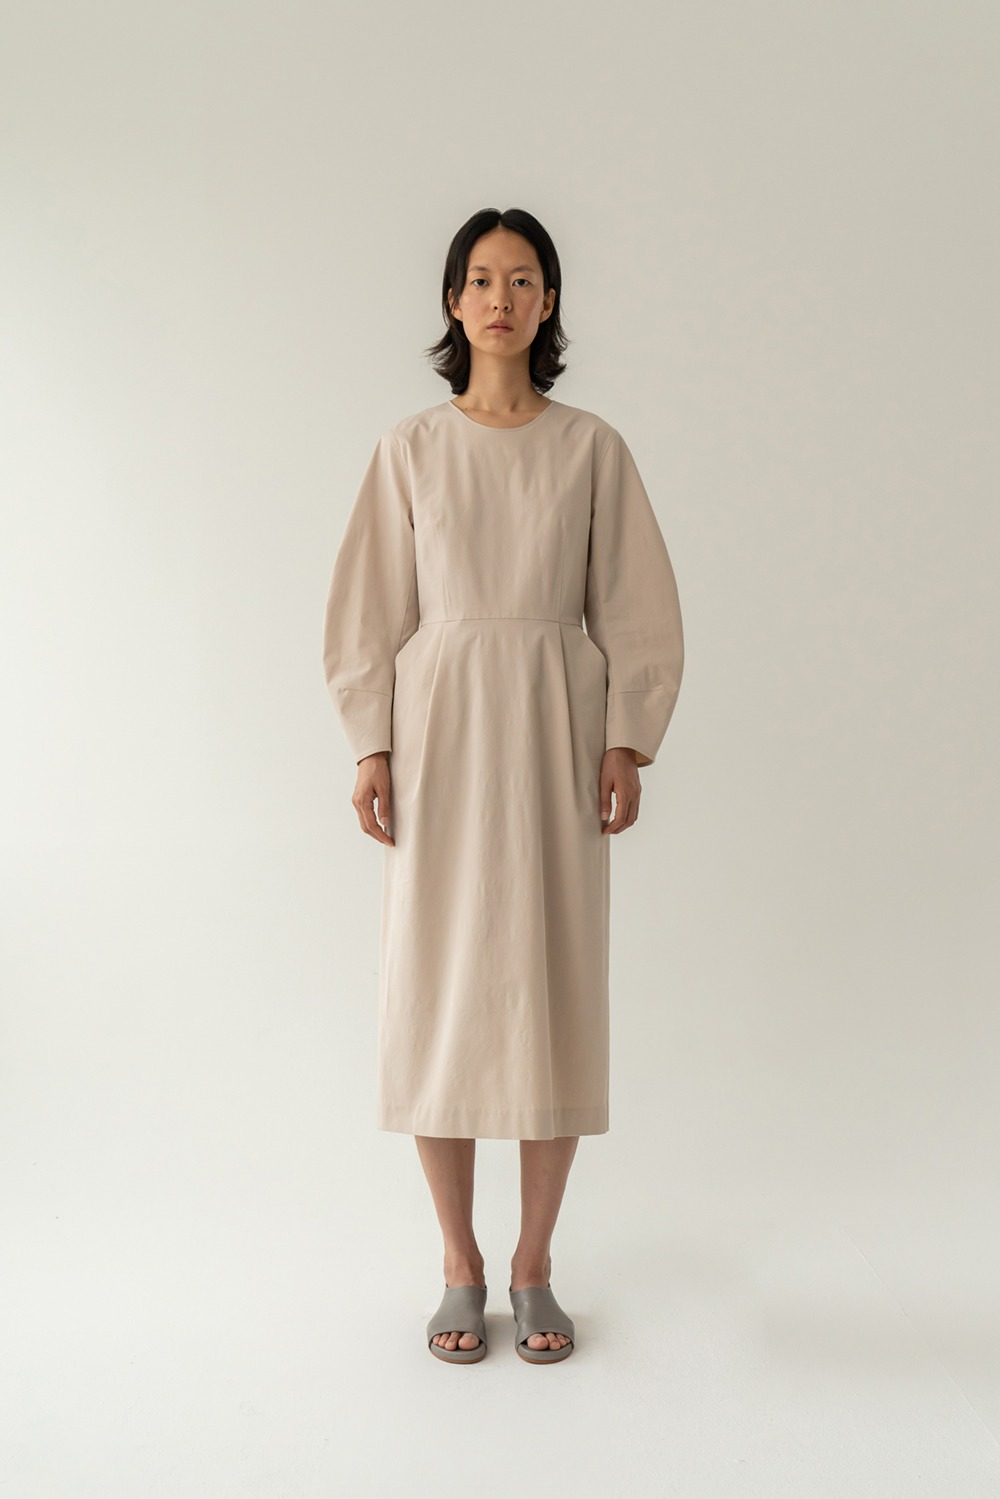 Bell époque cotton dress beige